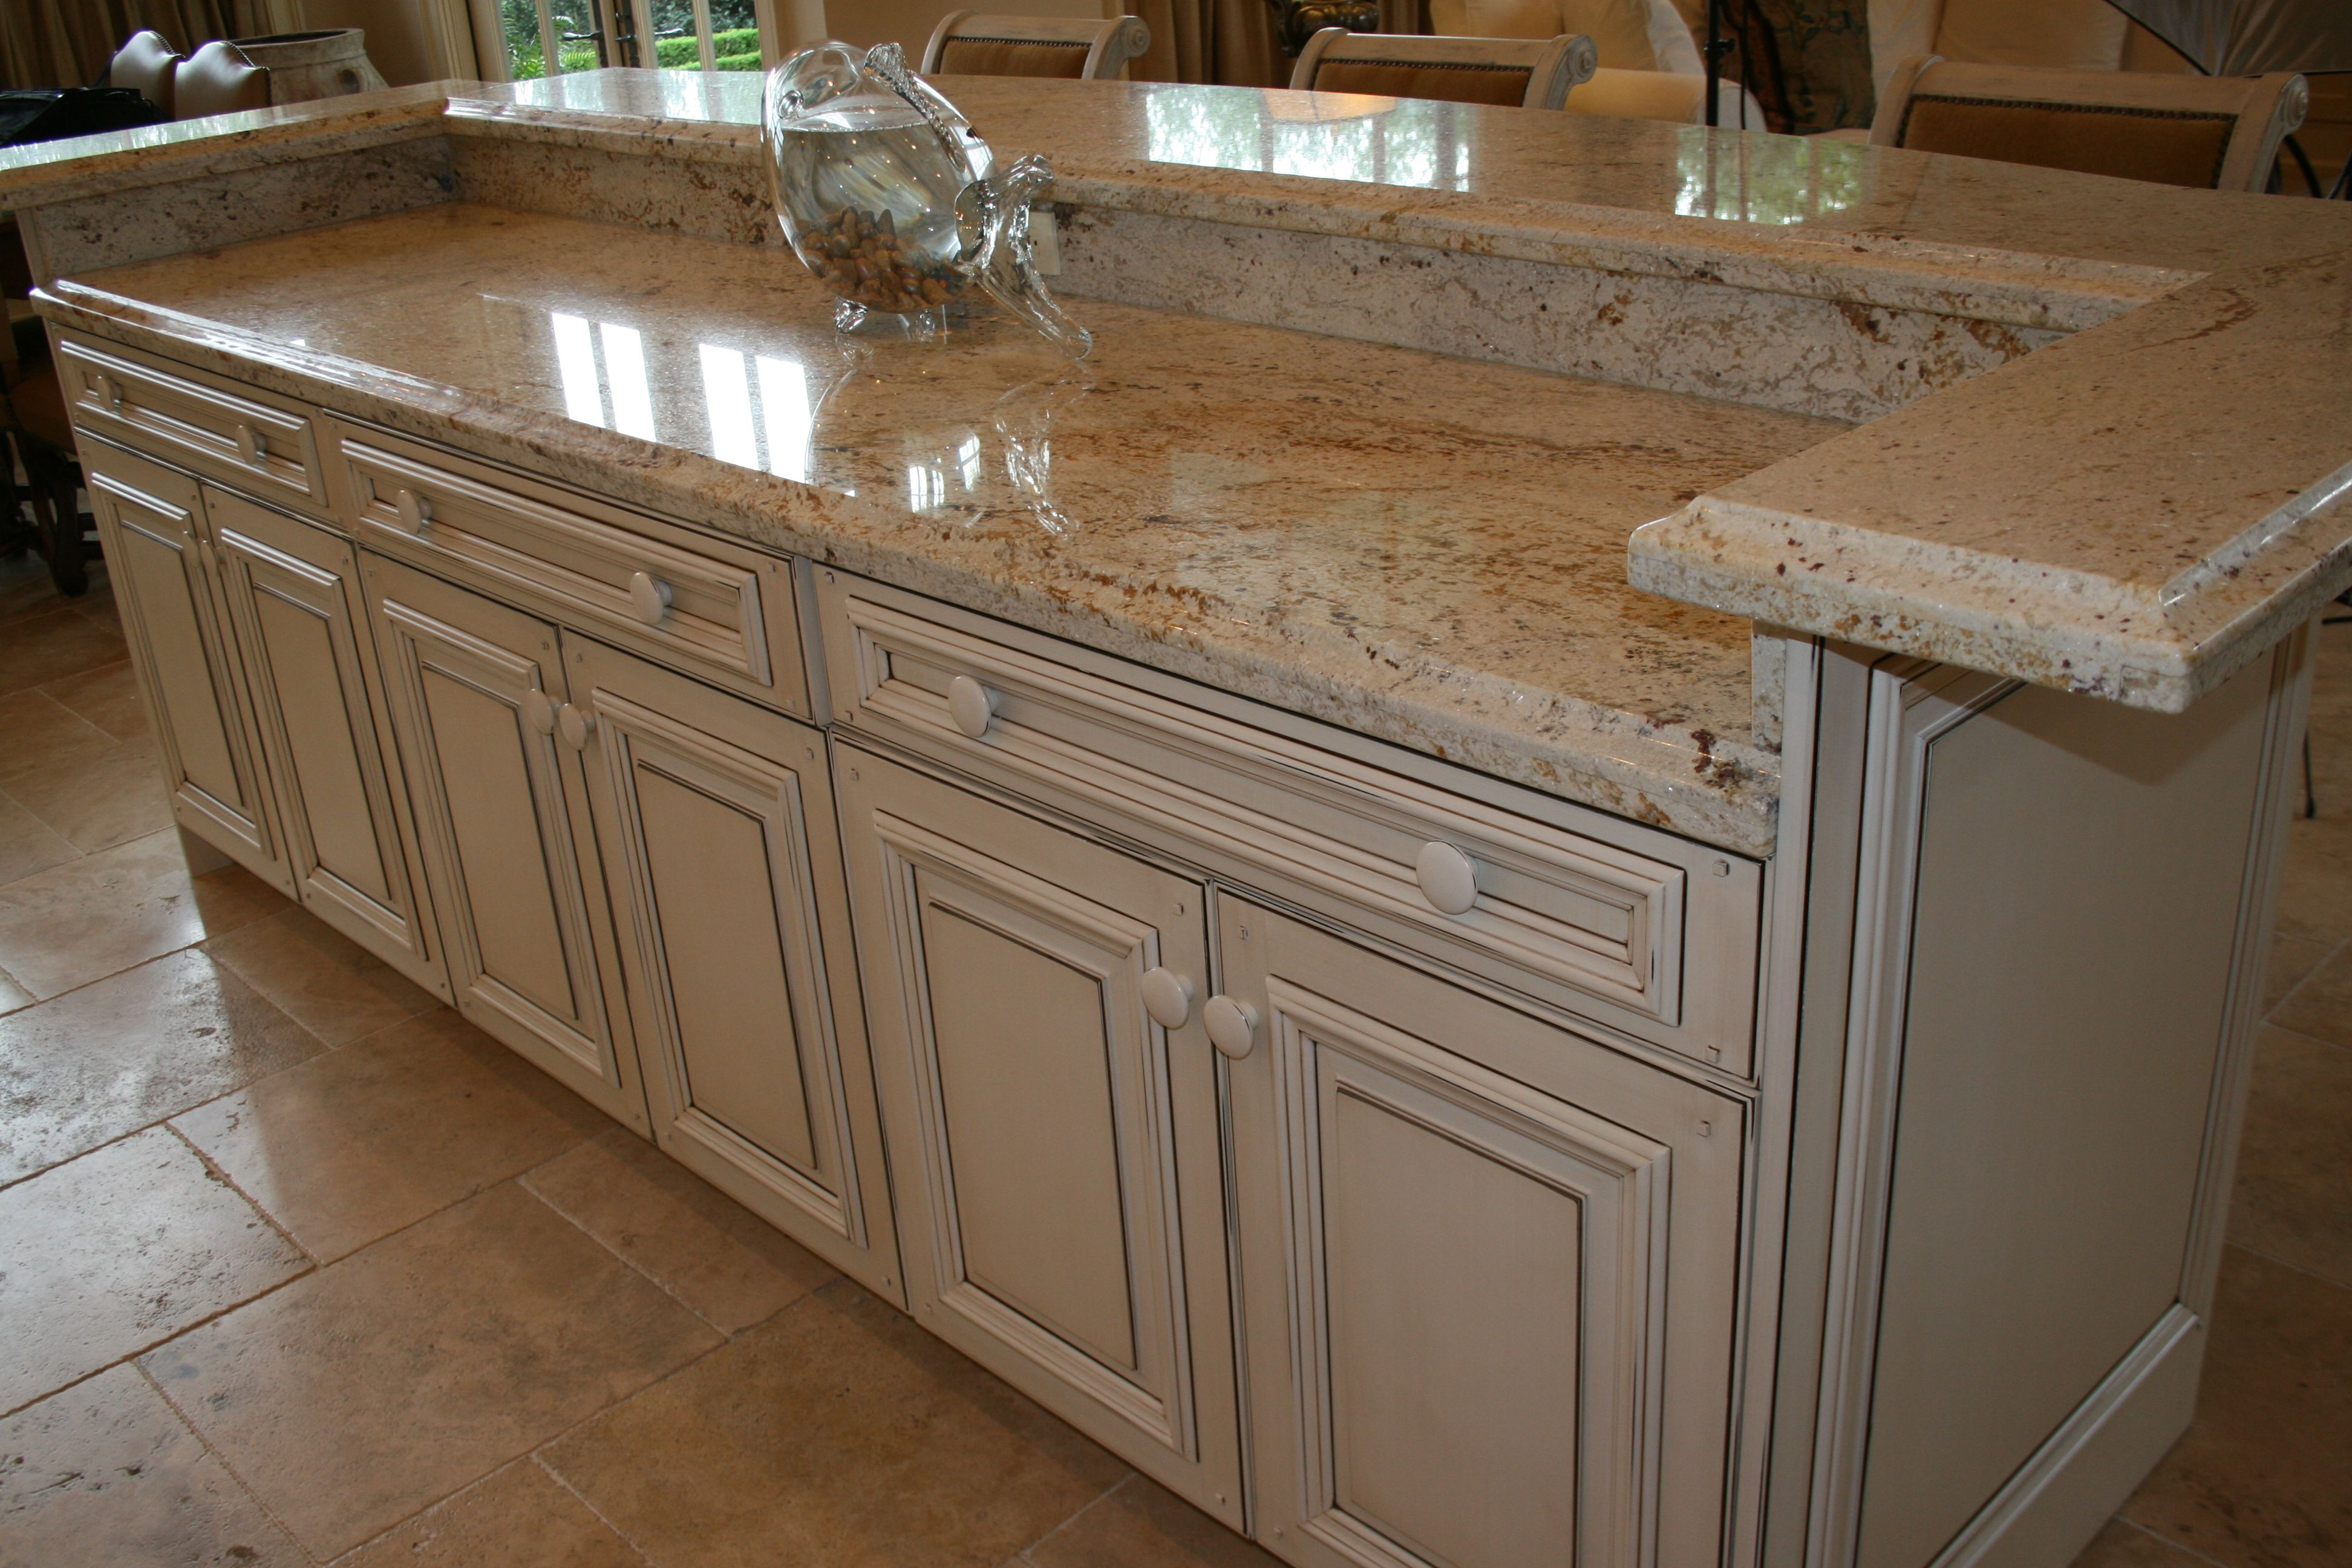 Colonial Cream Granite Kitchen 3cm Colonial Cream Granite With Deep Ogee Edge And Flush Laminated